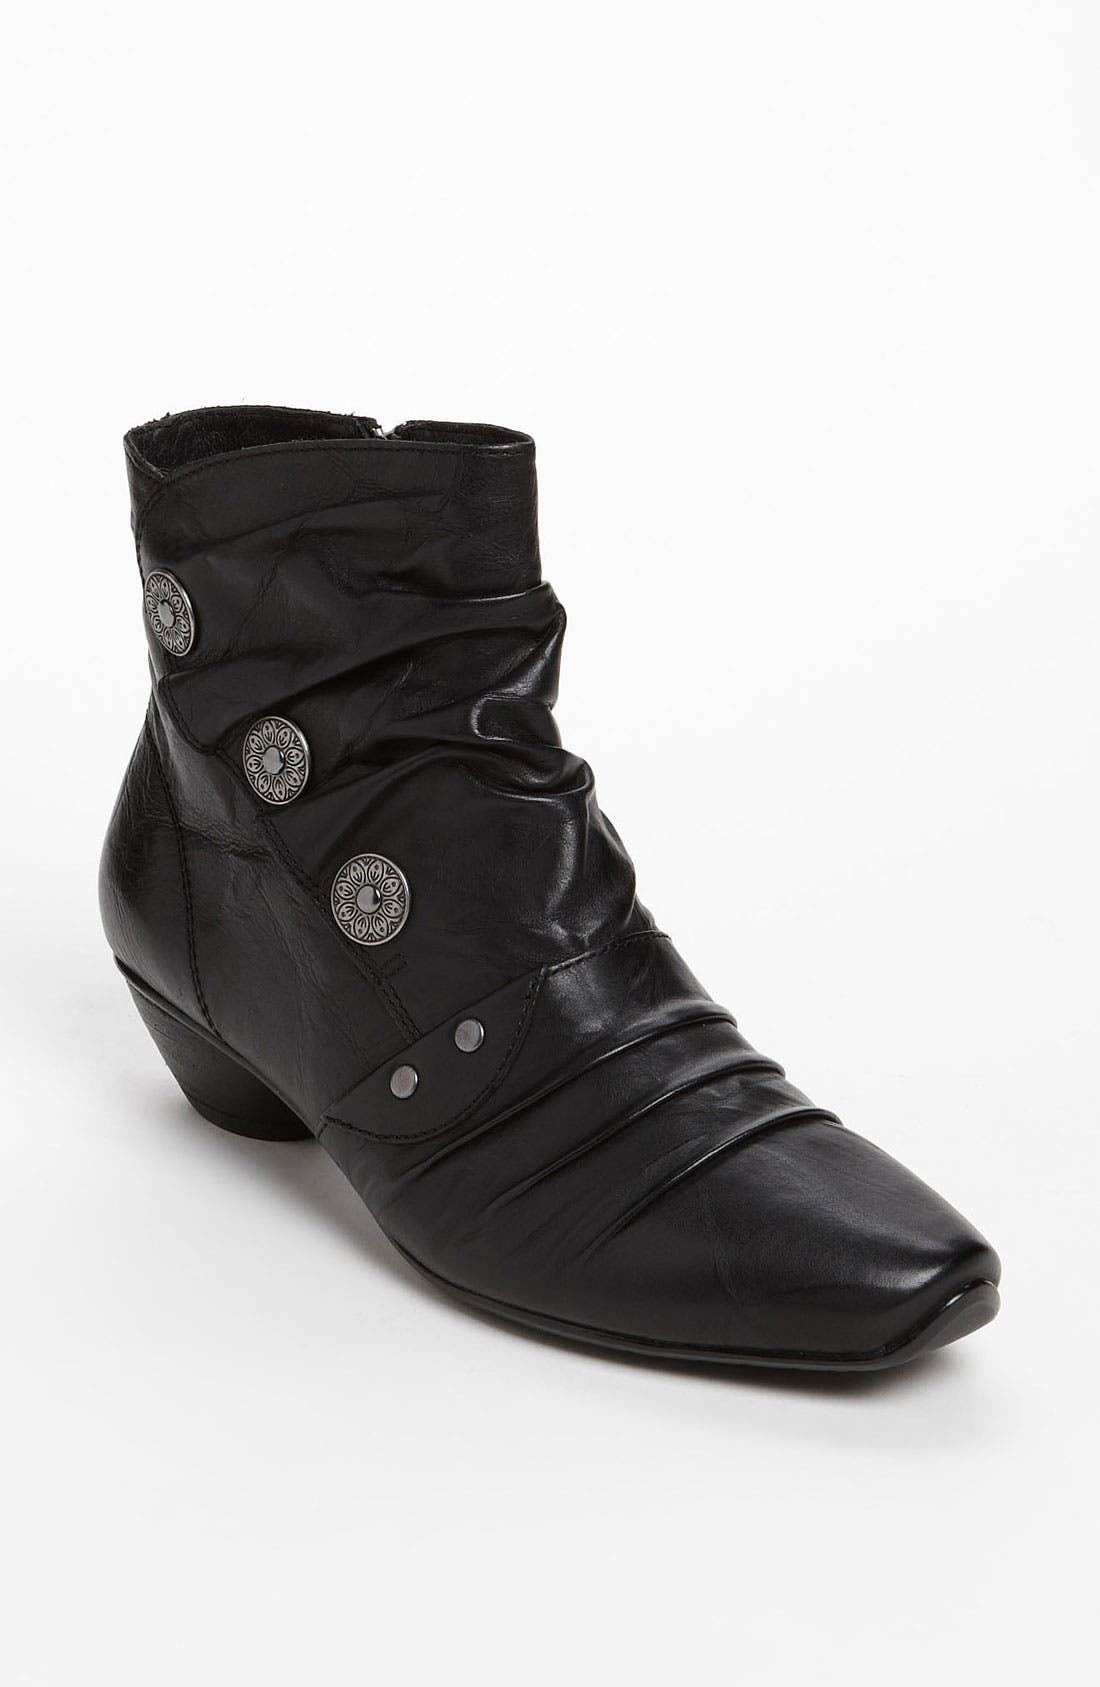 Main Image - Josef Seibel 'Tina 42' Boot